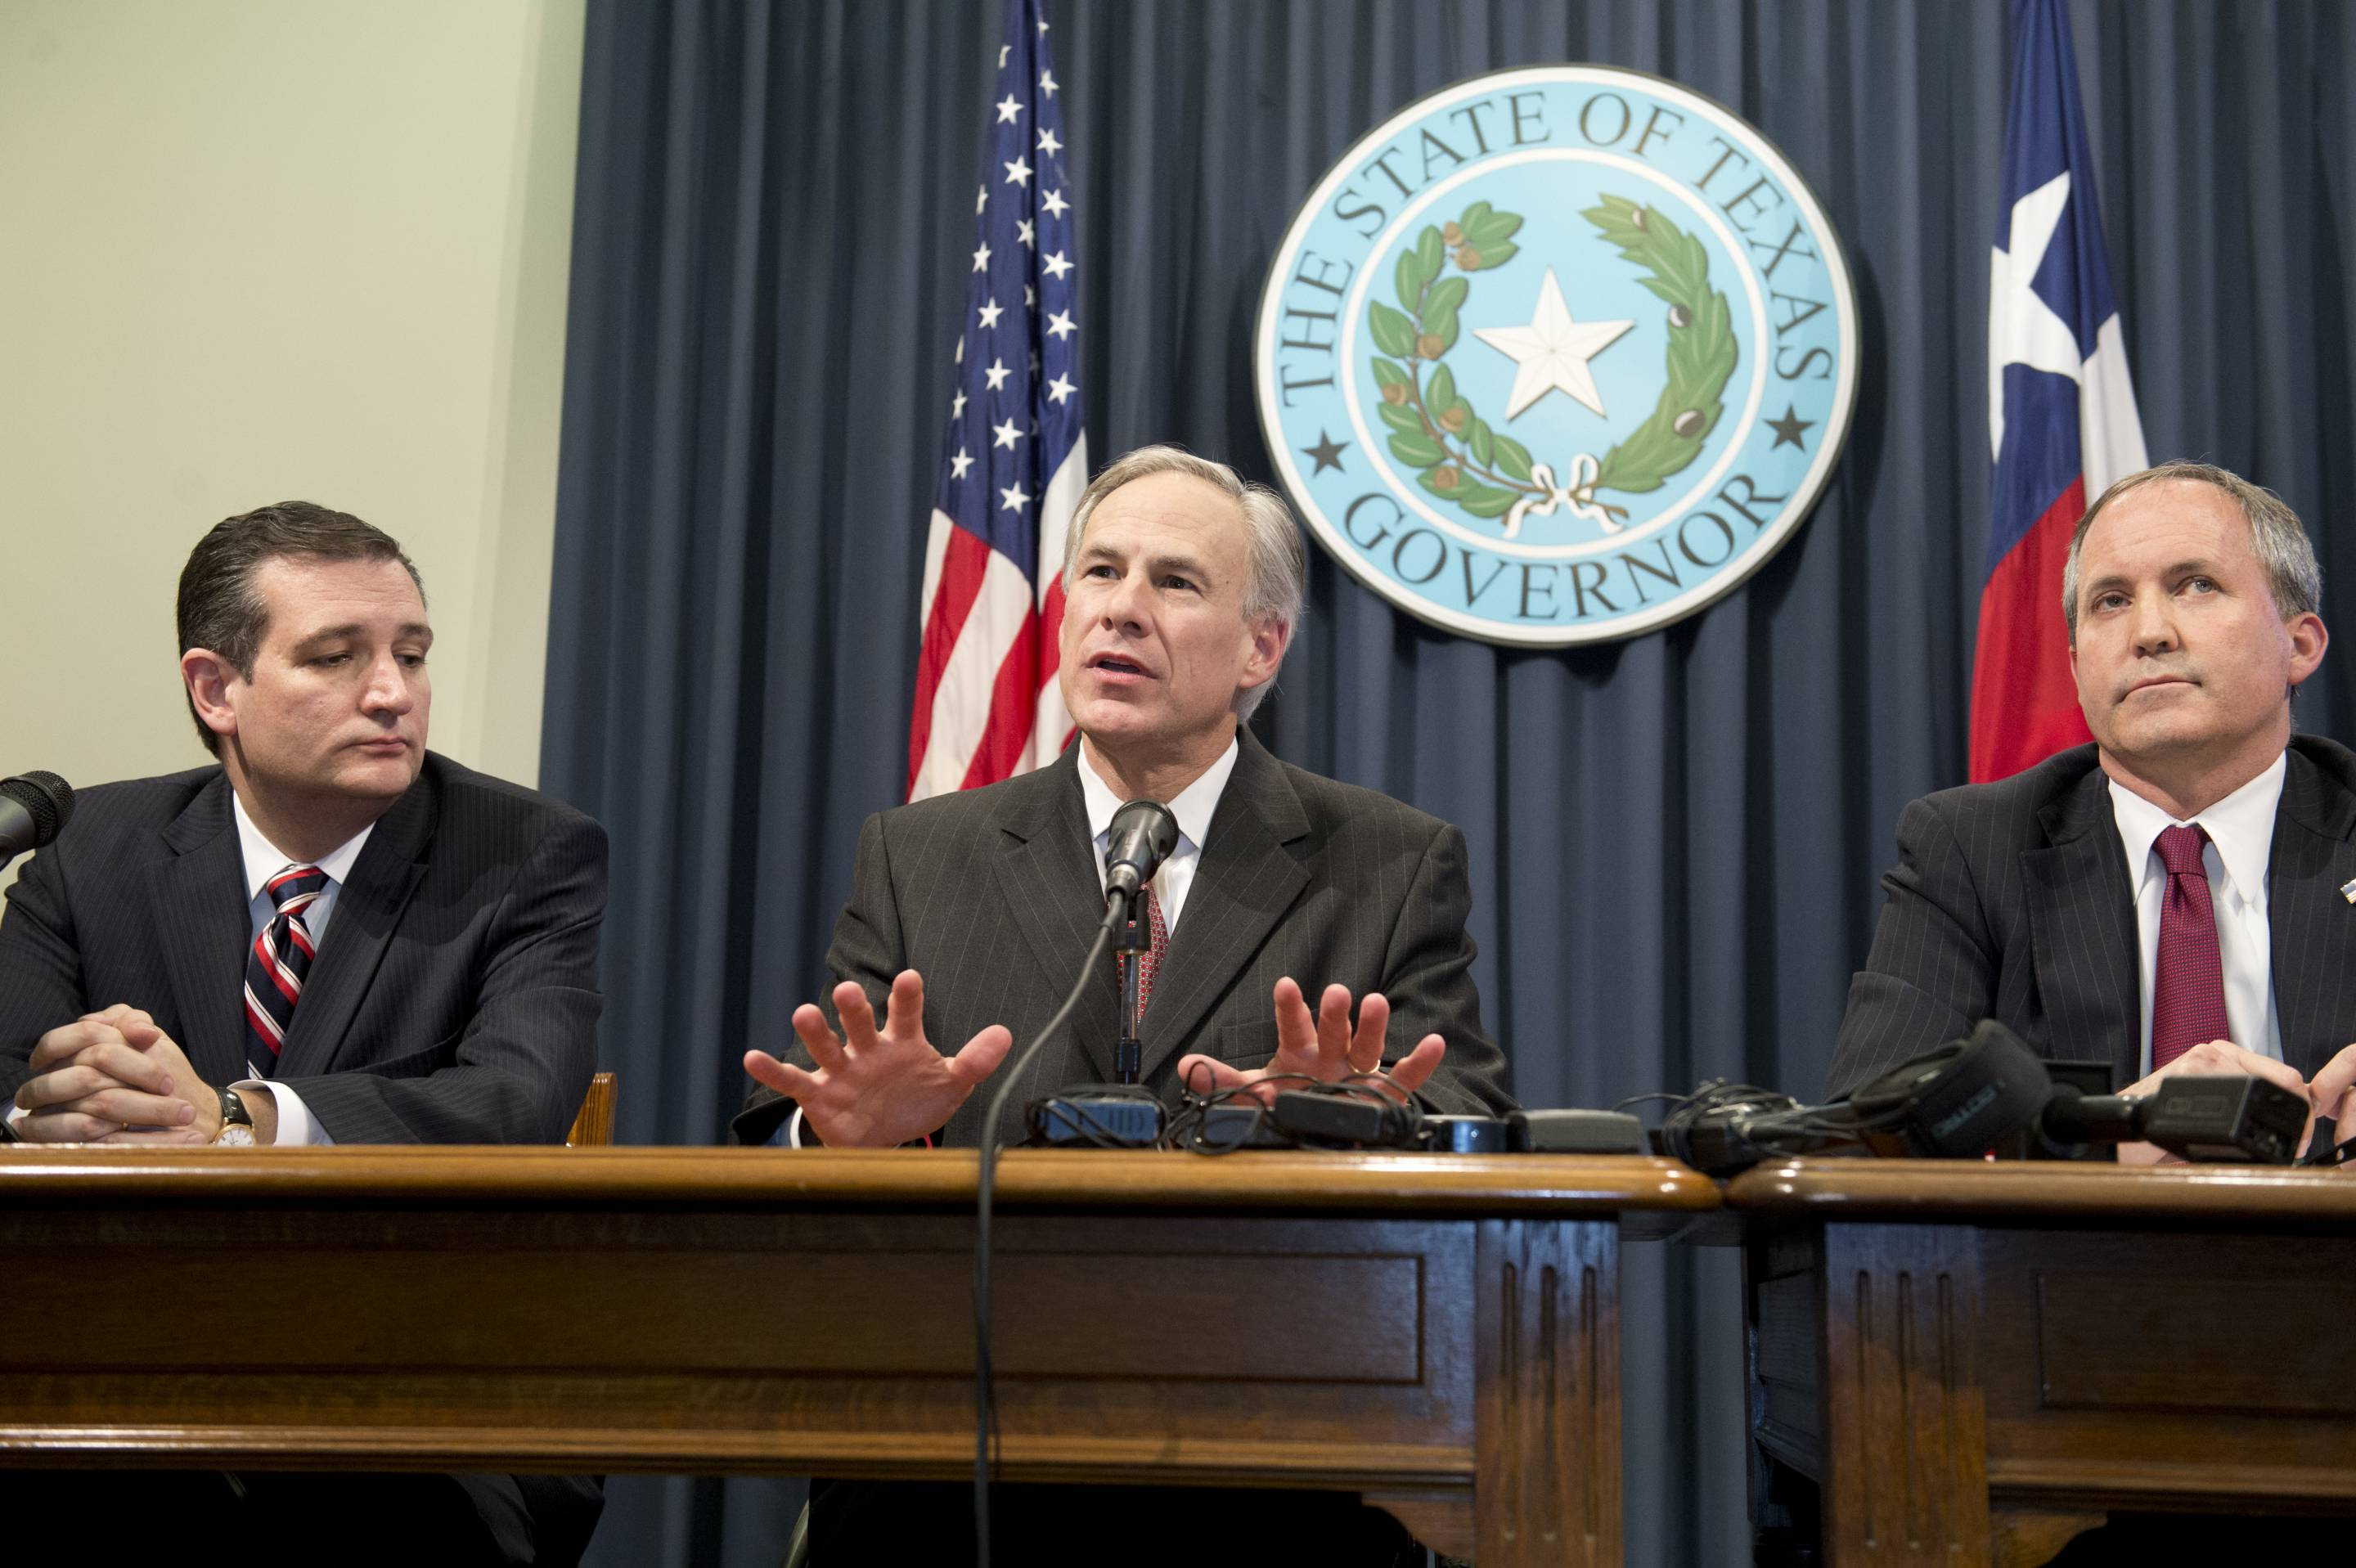 Texas AG Ken Paxton Indicted